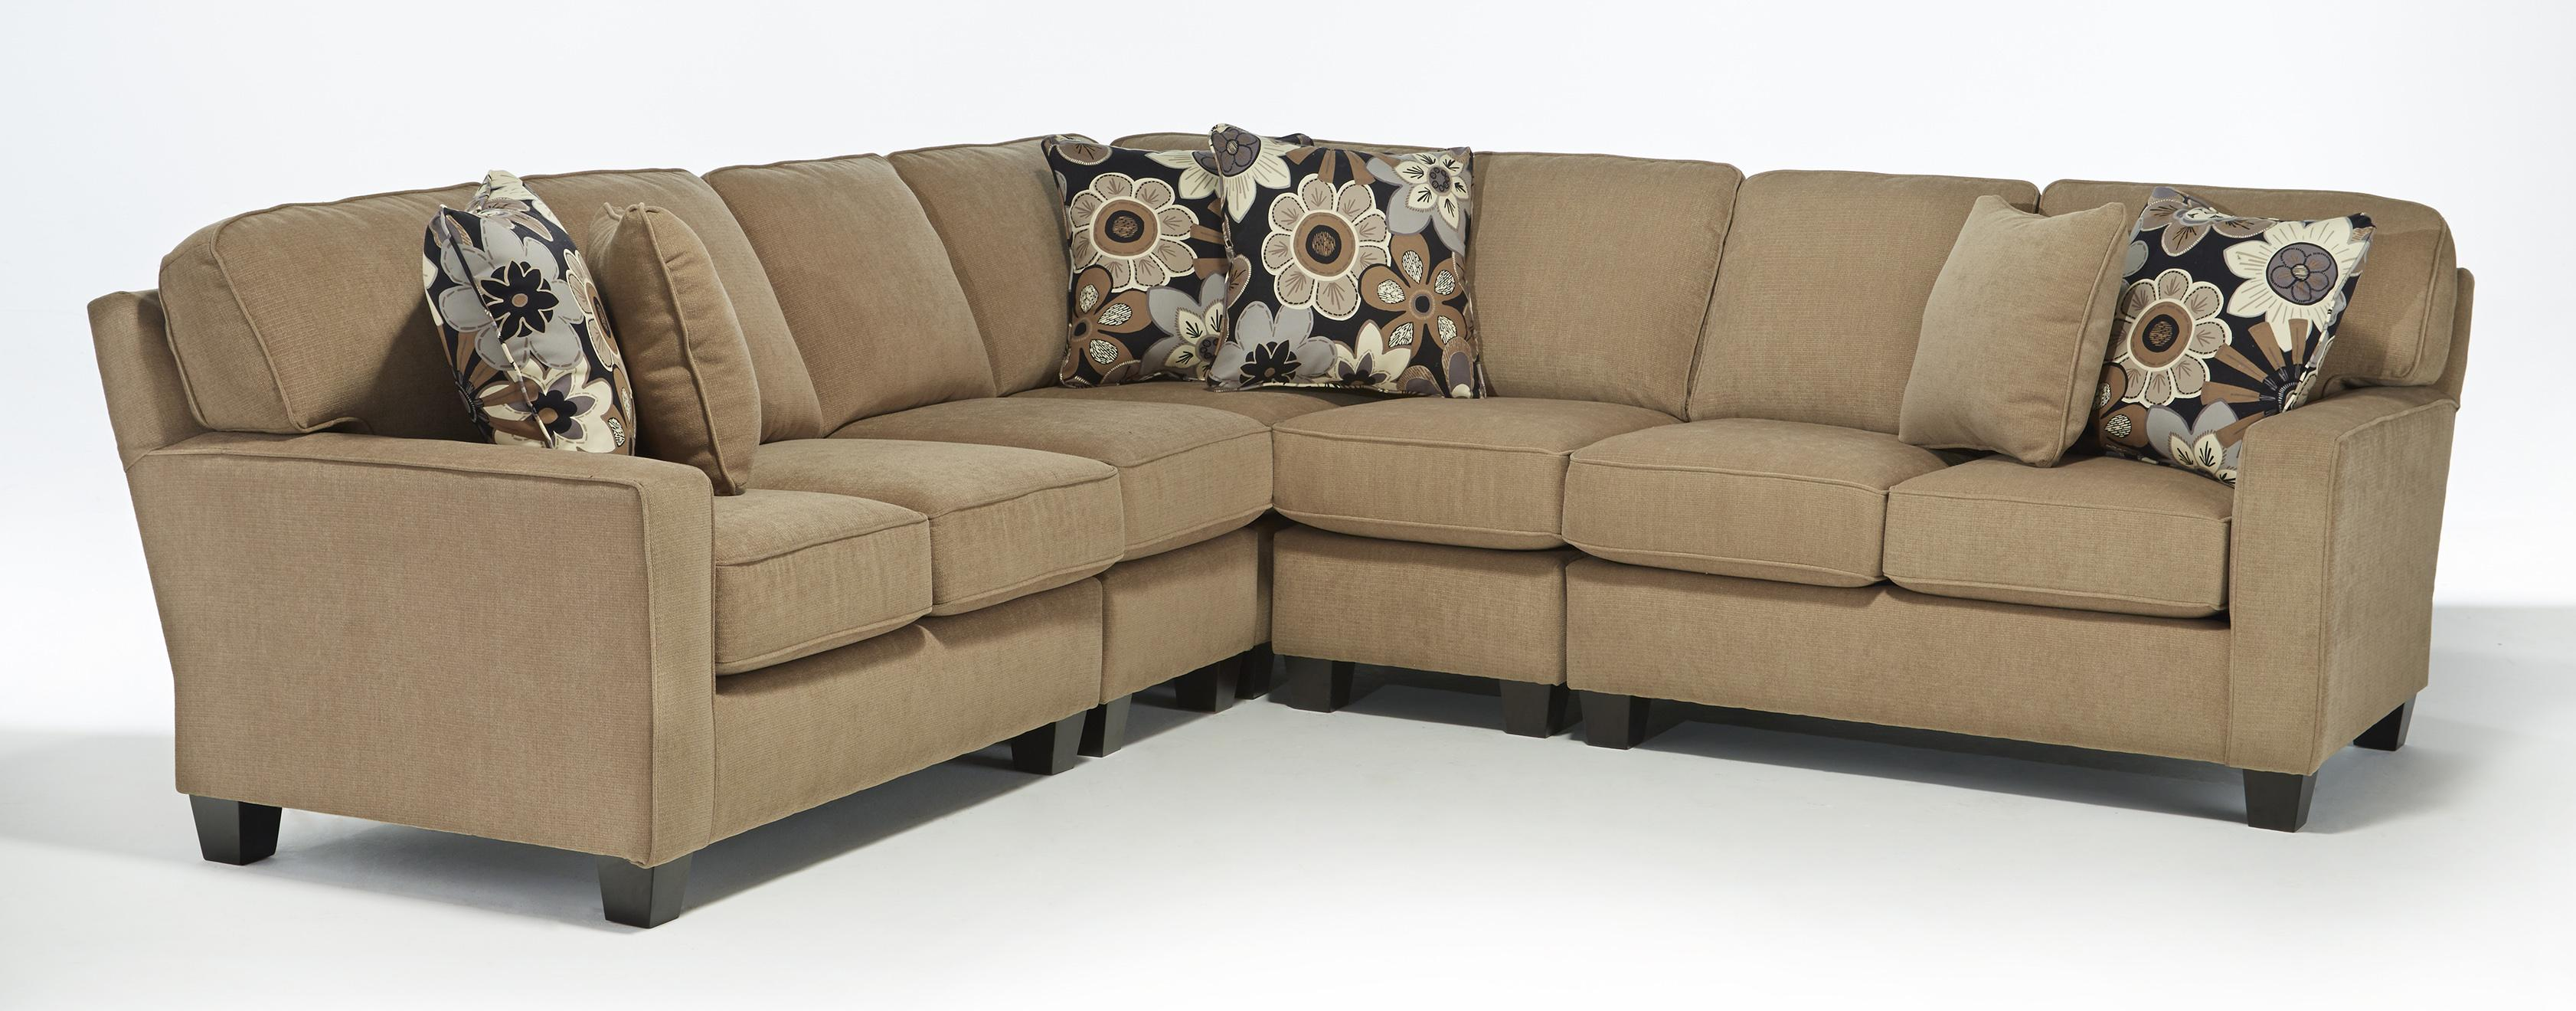 Annabel  5 Pc Sectional Sofa by Best Home Furnishings at Alison Craig Home Furnishings